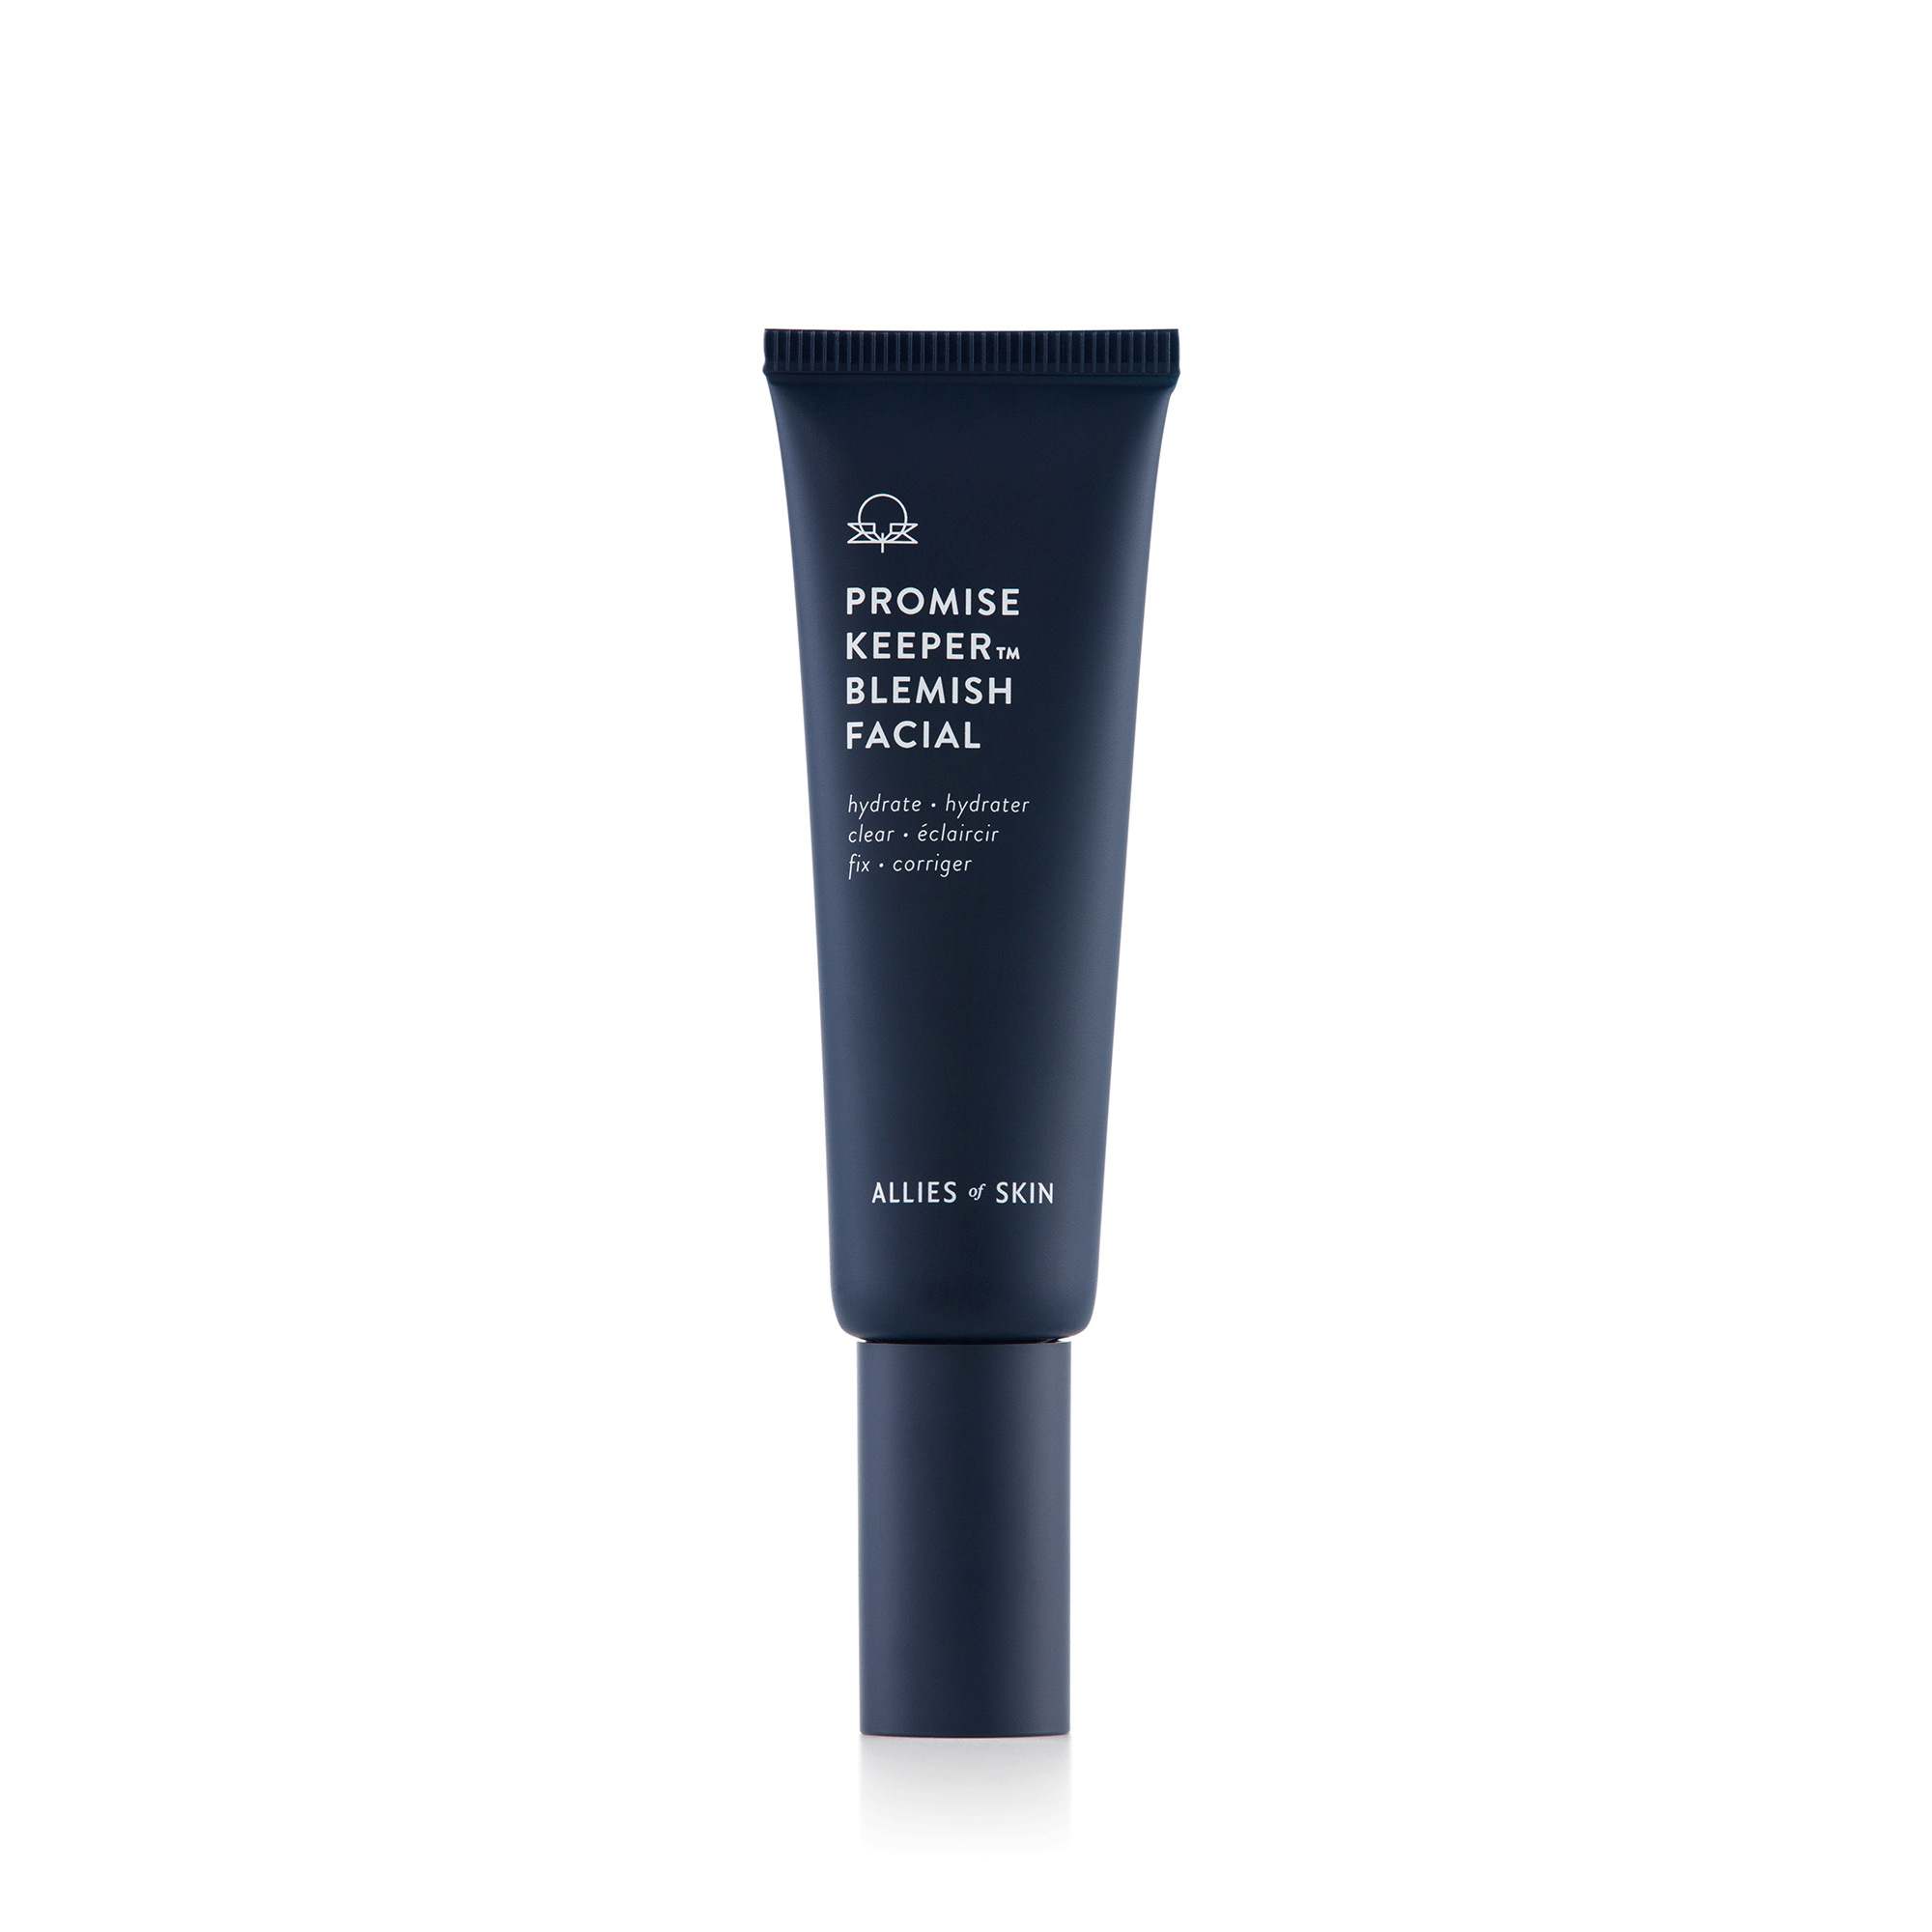 Allies of Skin Promise Keeper Blemish Facial at Cult Beauty Dhs568